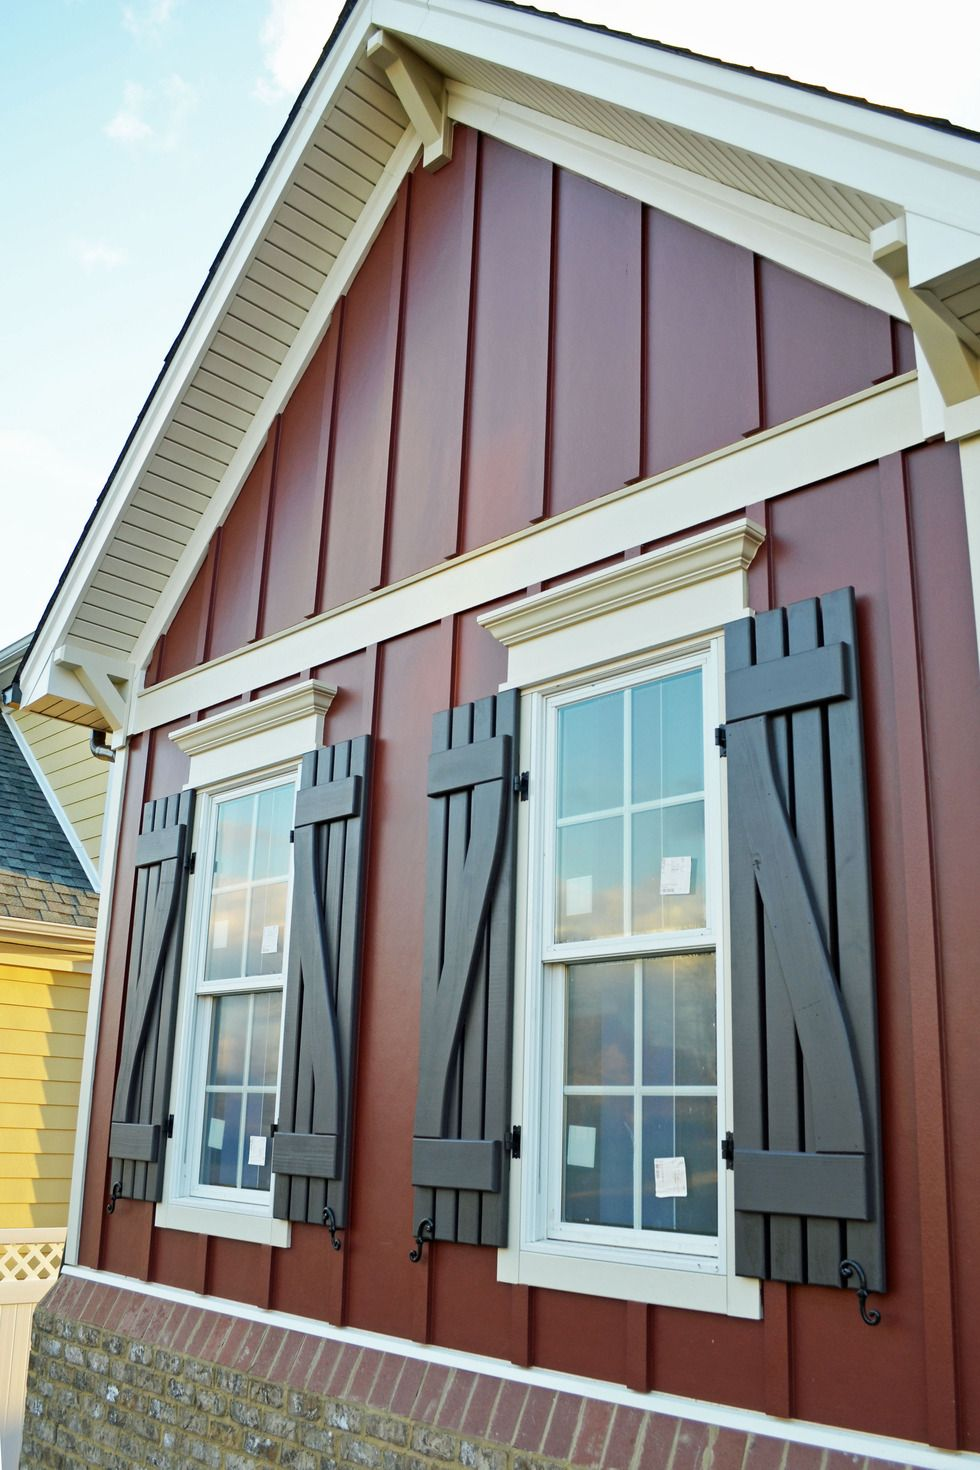 Exterior modern siding window design  vertical plank siding by james hardie  outdoor living  pinterest